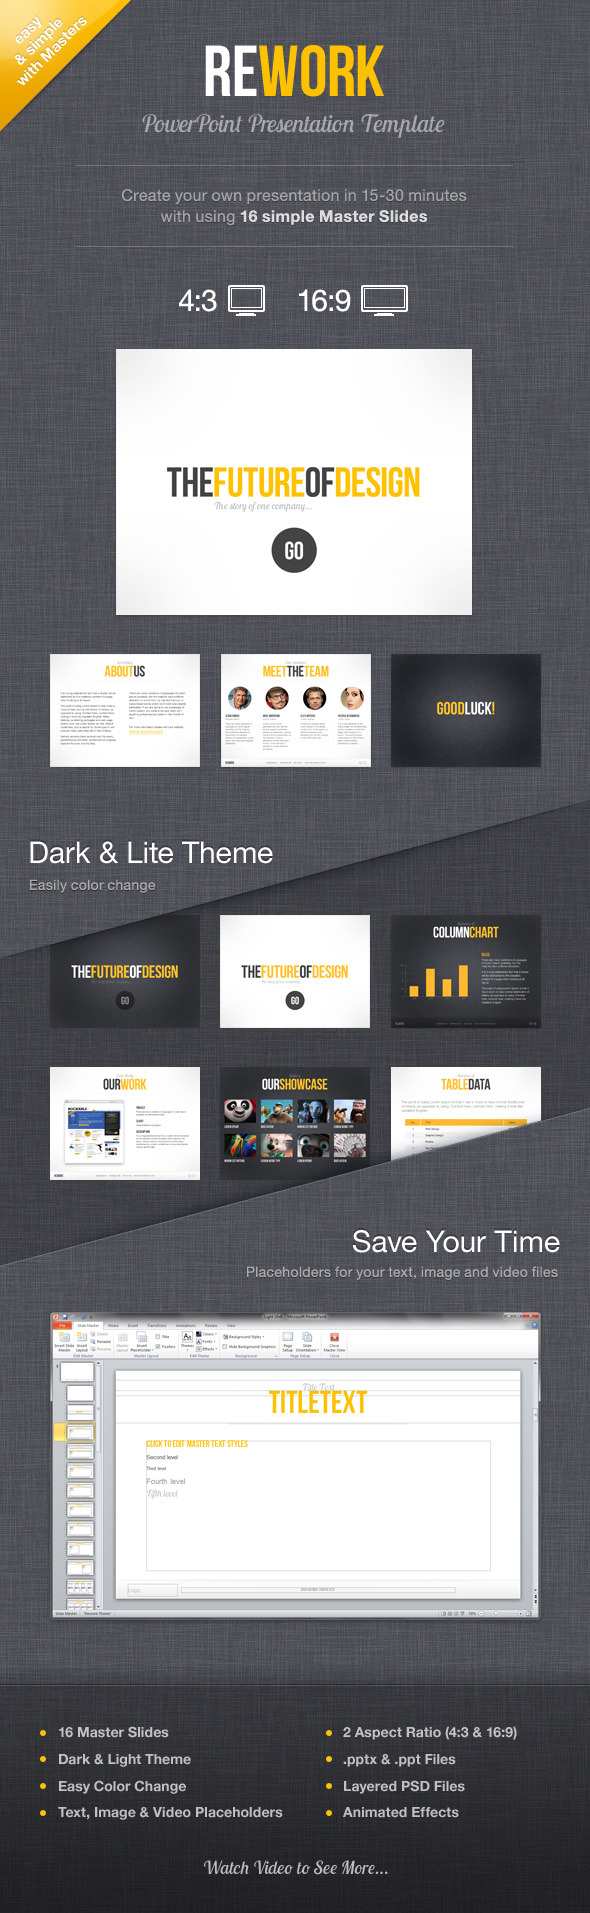 Rework PowerPoint Presentation Template - PowerPoint Templates Presentation Templates